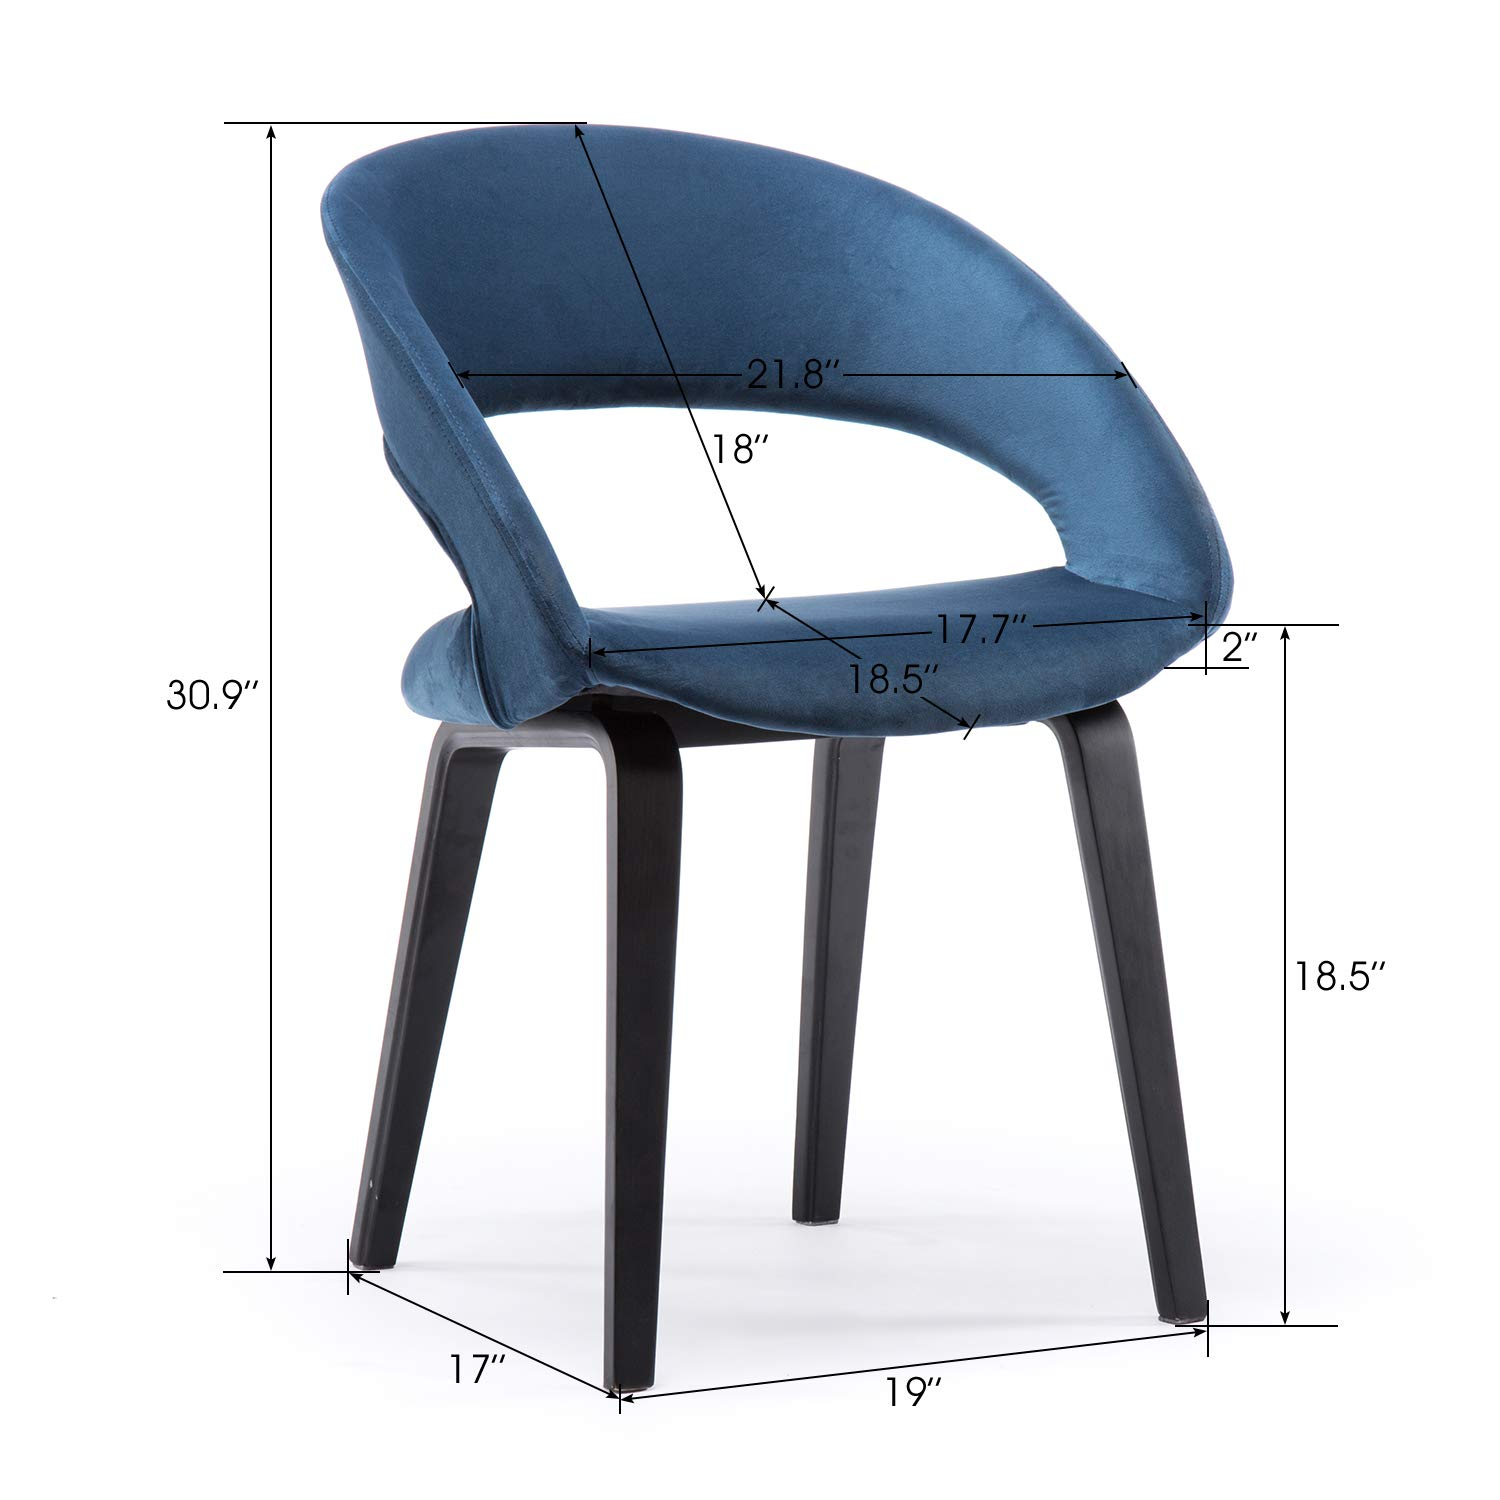 Amazon com yimiga dining chair open back blue mid century modern arm chairs black wood legs velvet upholstered fabric kitchen bedroom dining room